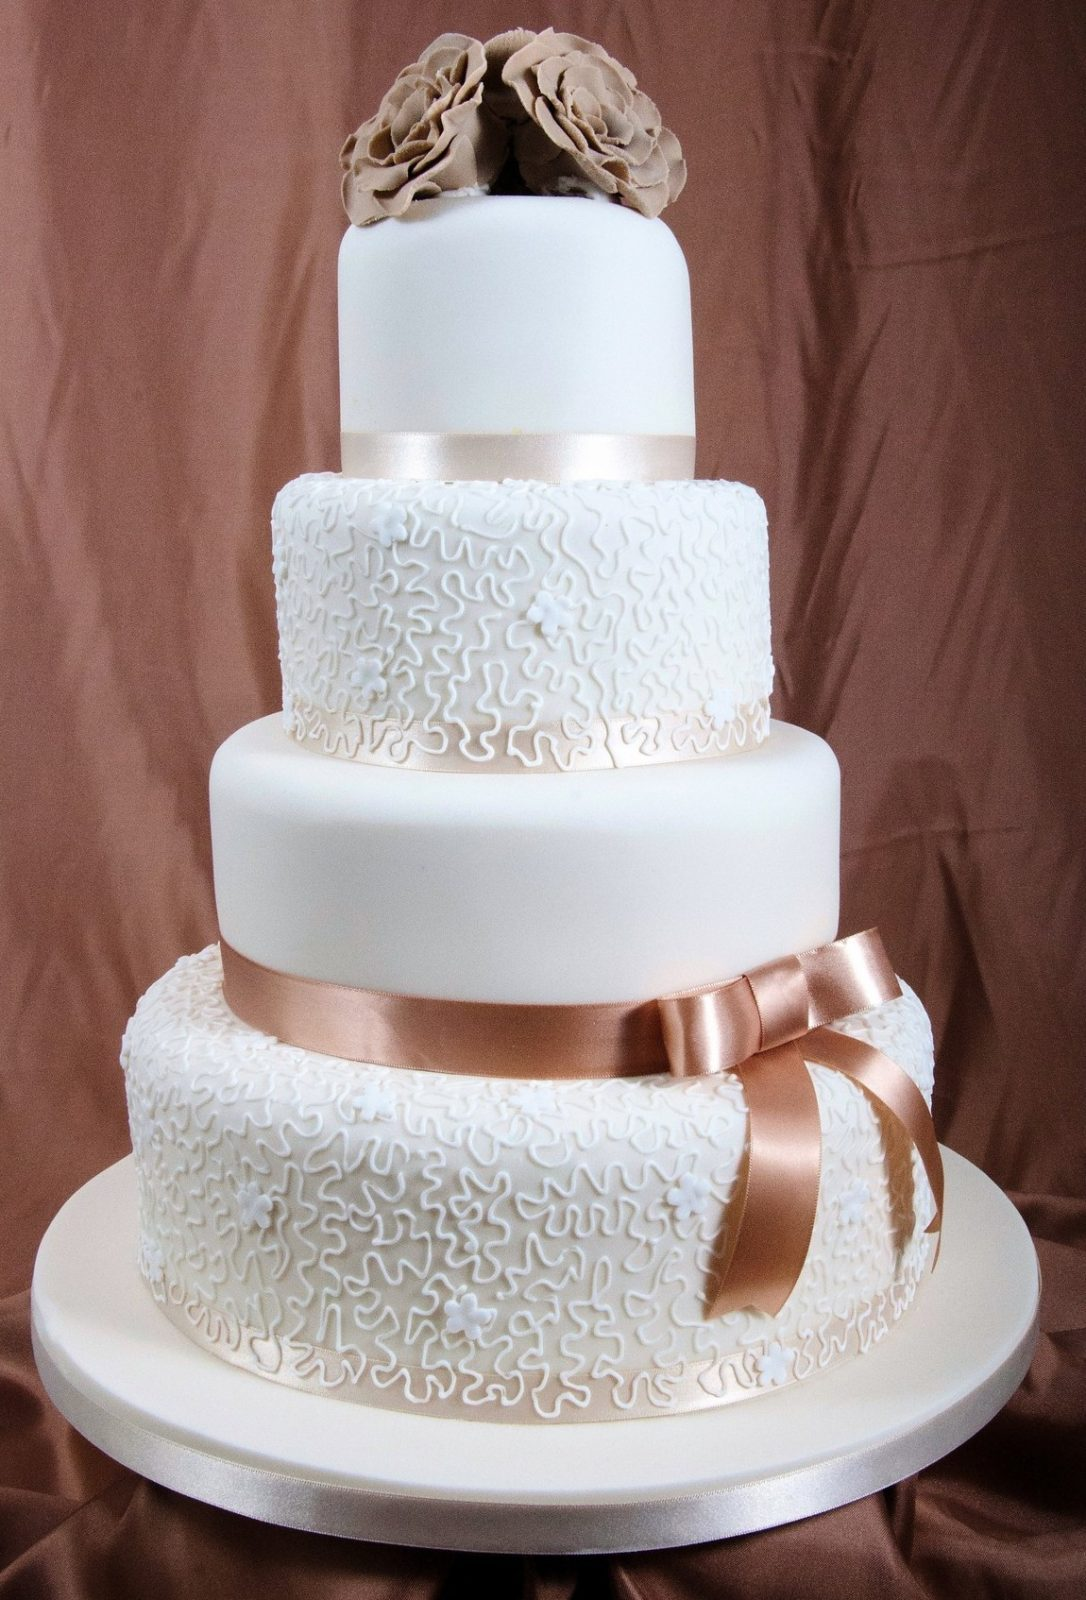 simple wedding cakes designs pictures versatile ideas for your wedding socially fabulous 20080